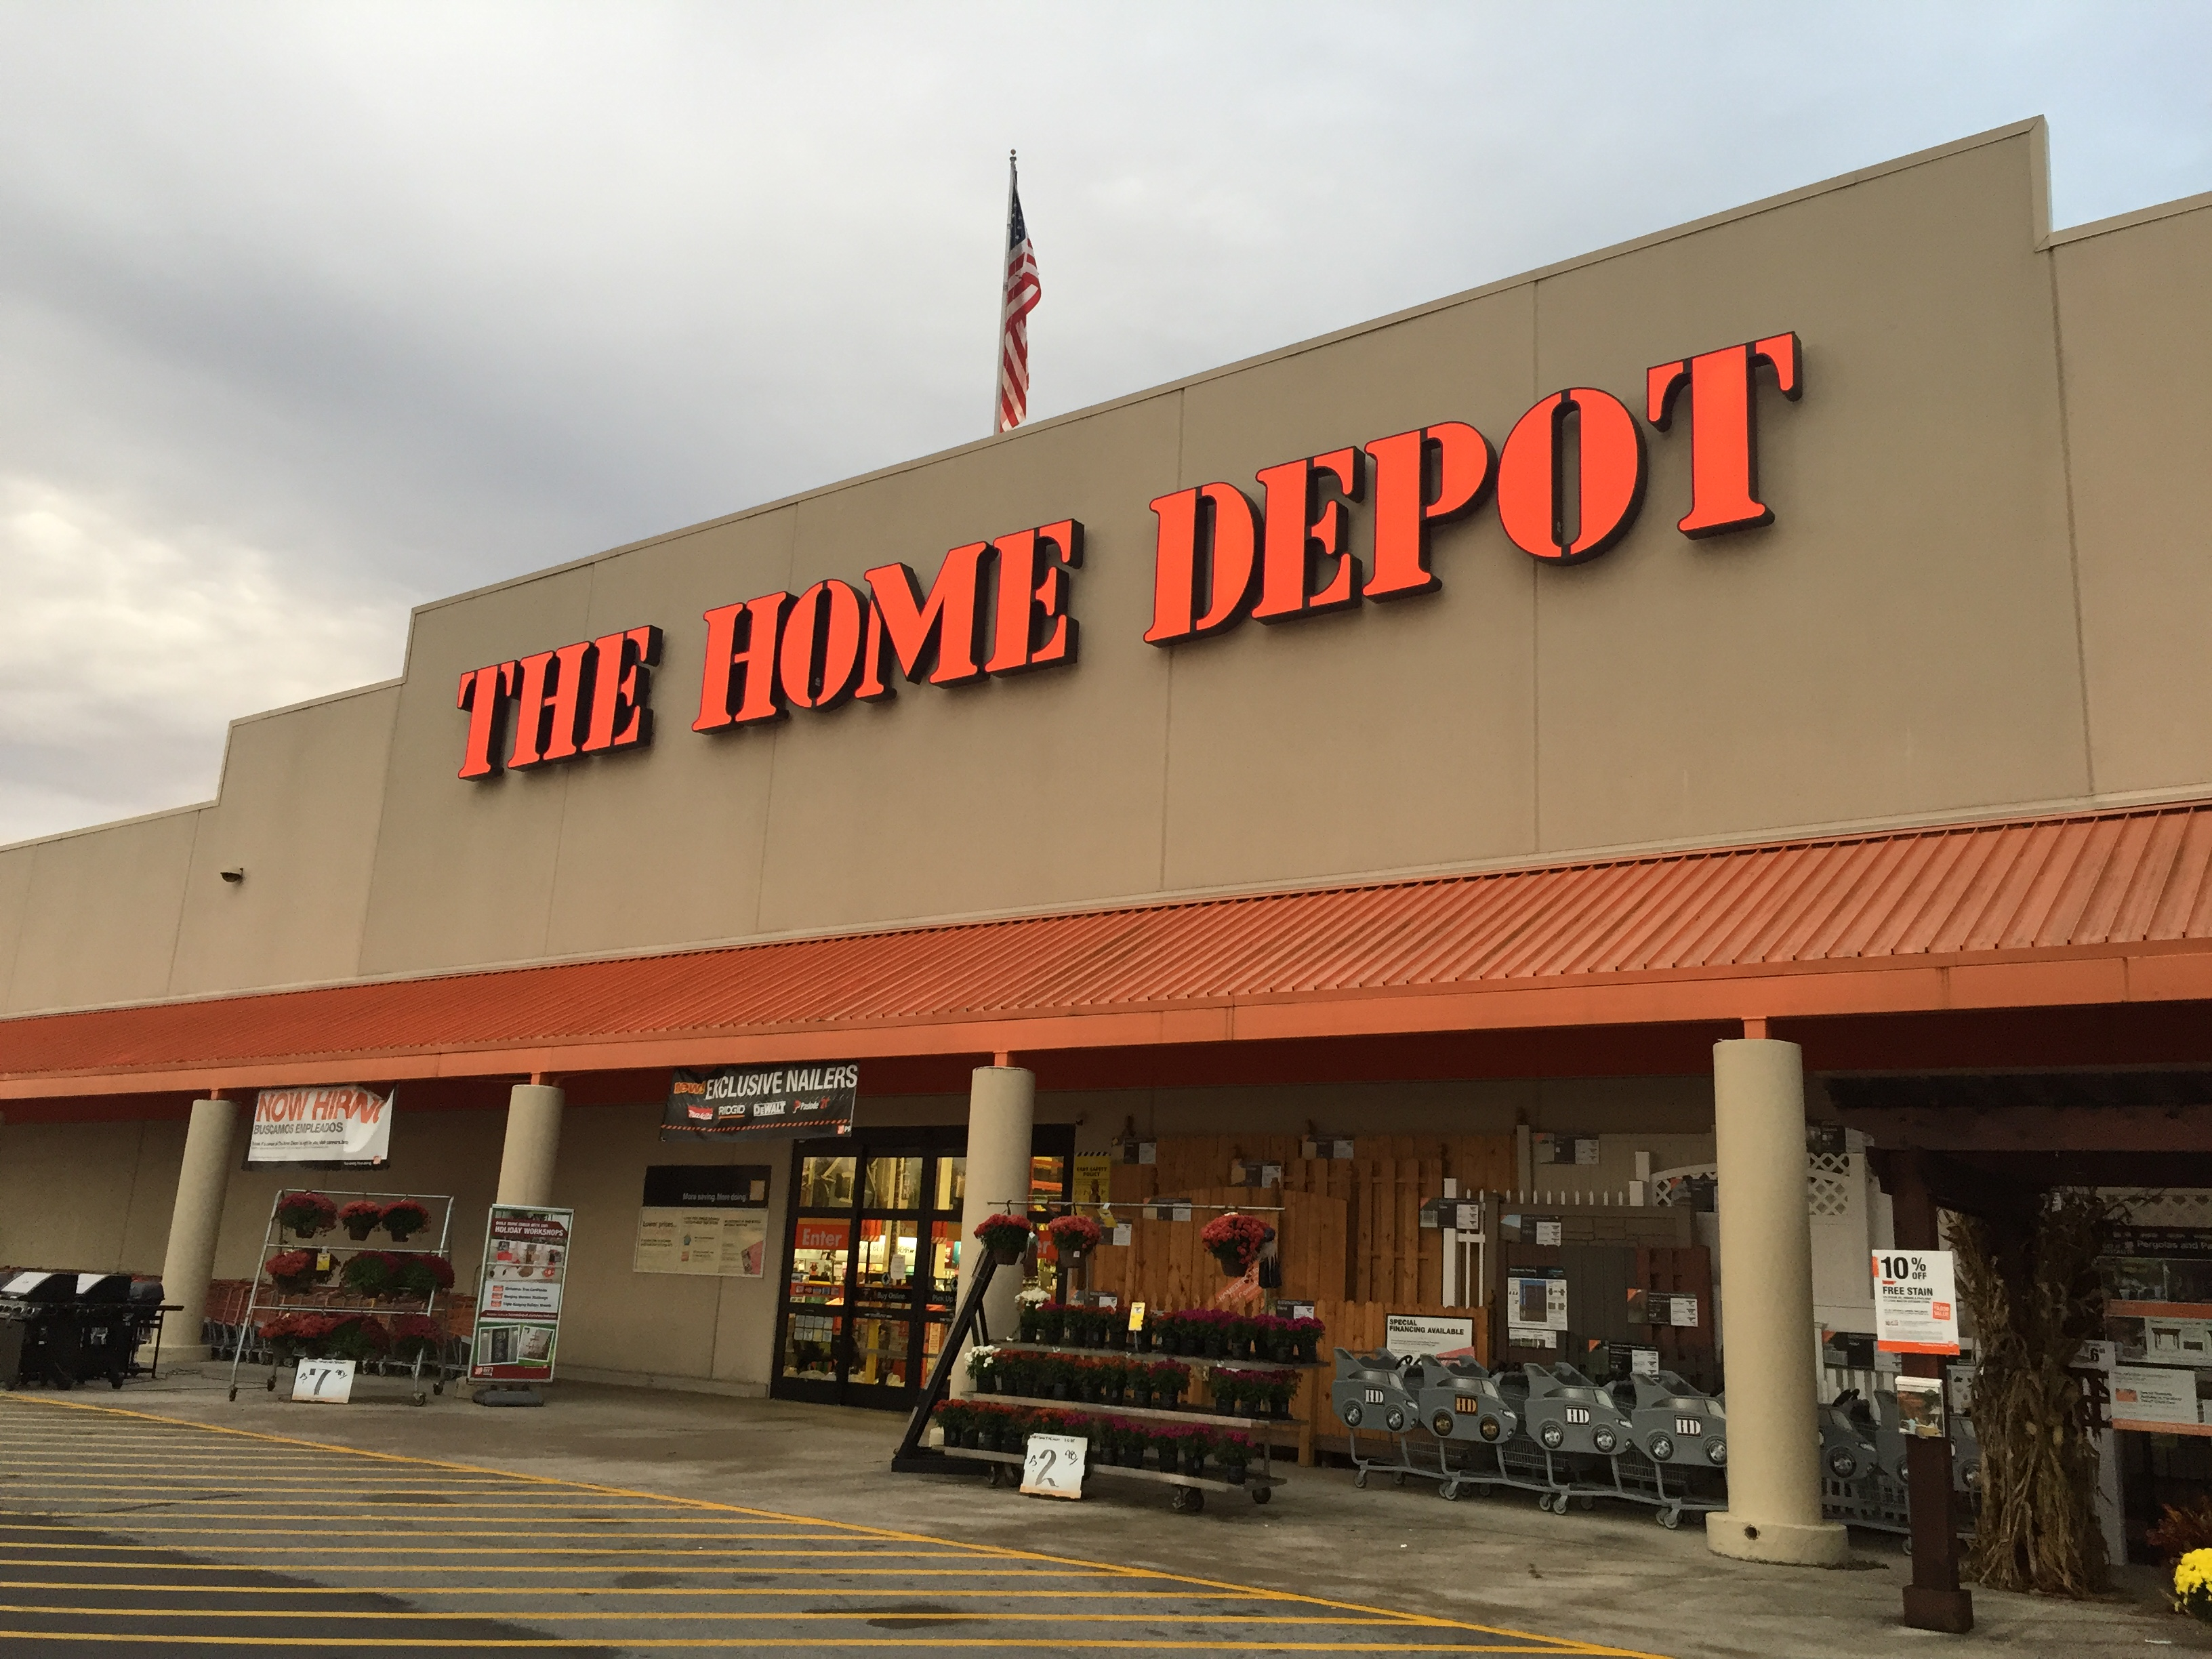 home depot store near me the home depot coupons hixson tn near me 8coupons